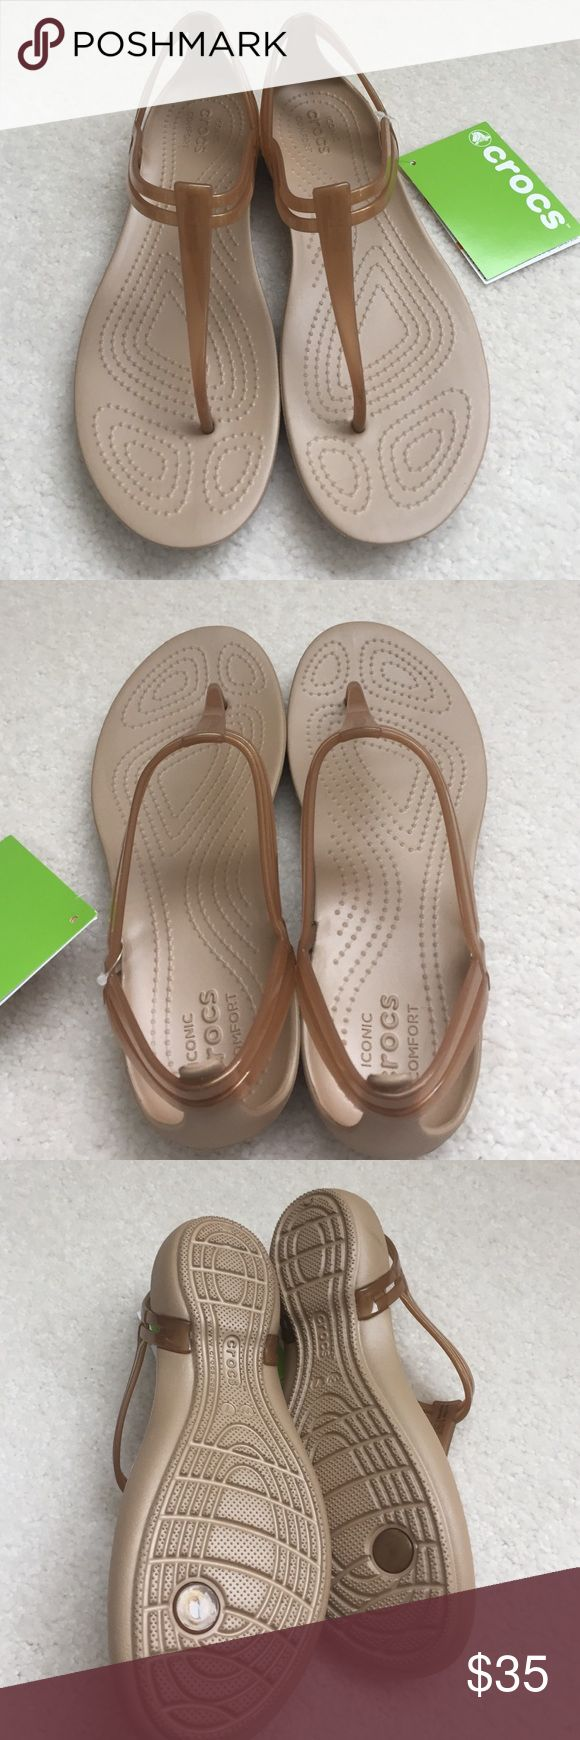 NWT Crocs T-Strap Bronze Comfy Sandals NWT T-Strap Bronze relaxed fit Crocs Sandals. Size: Woman 7. crocs Shoes Sandals